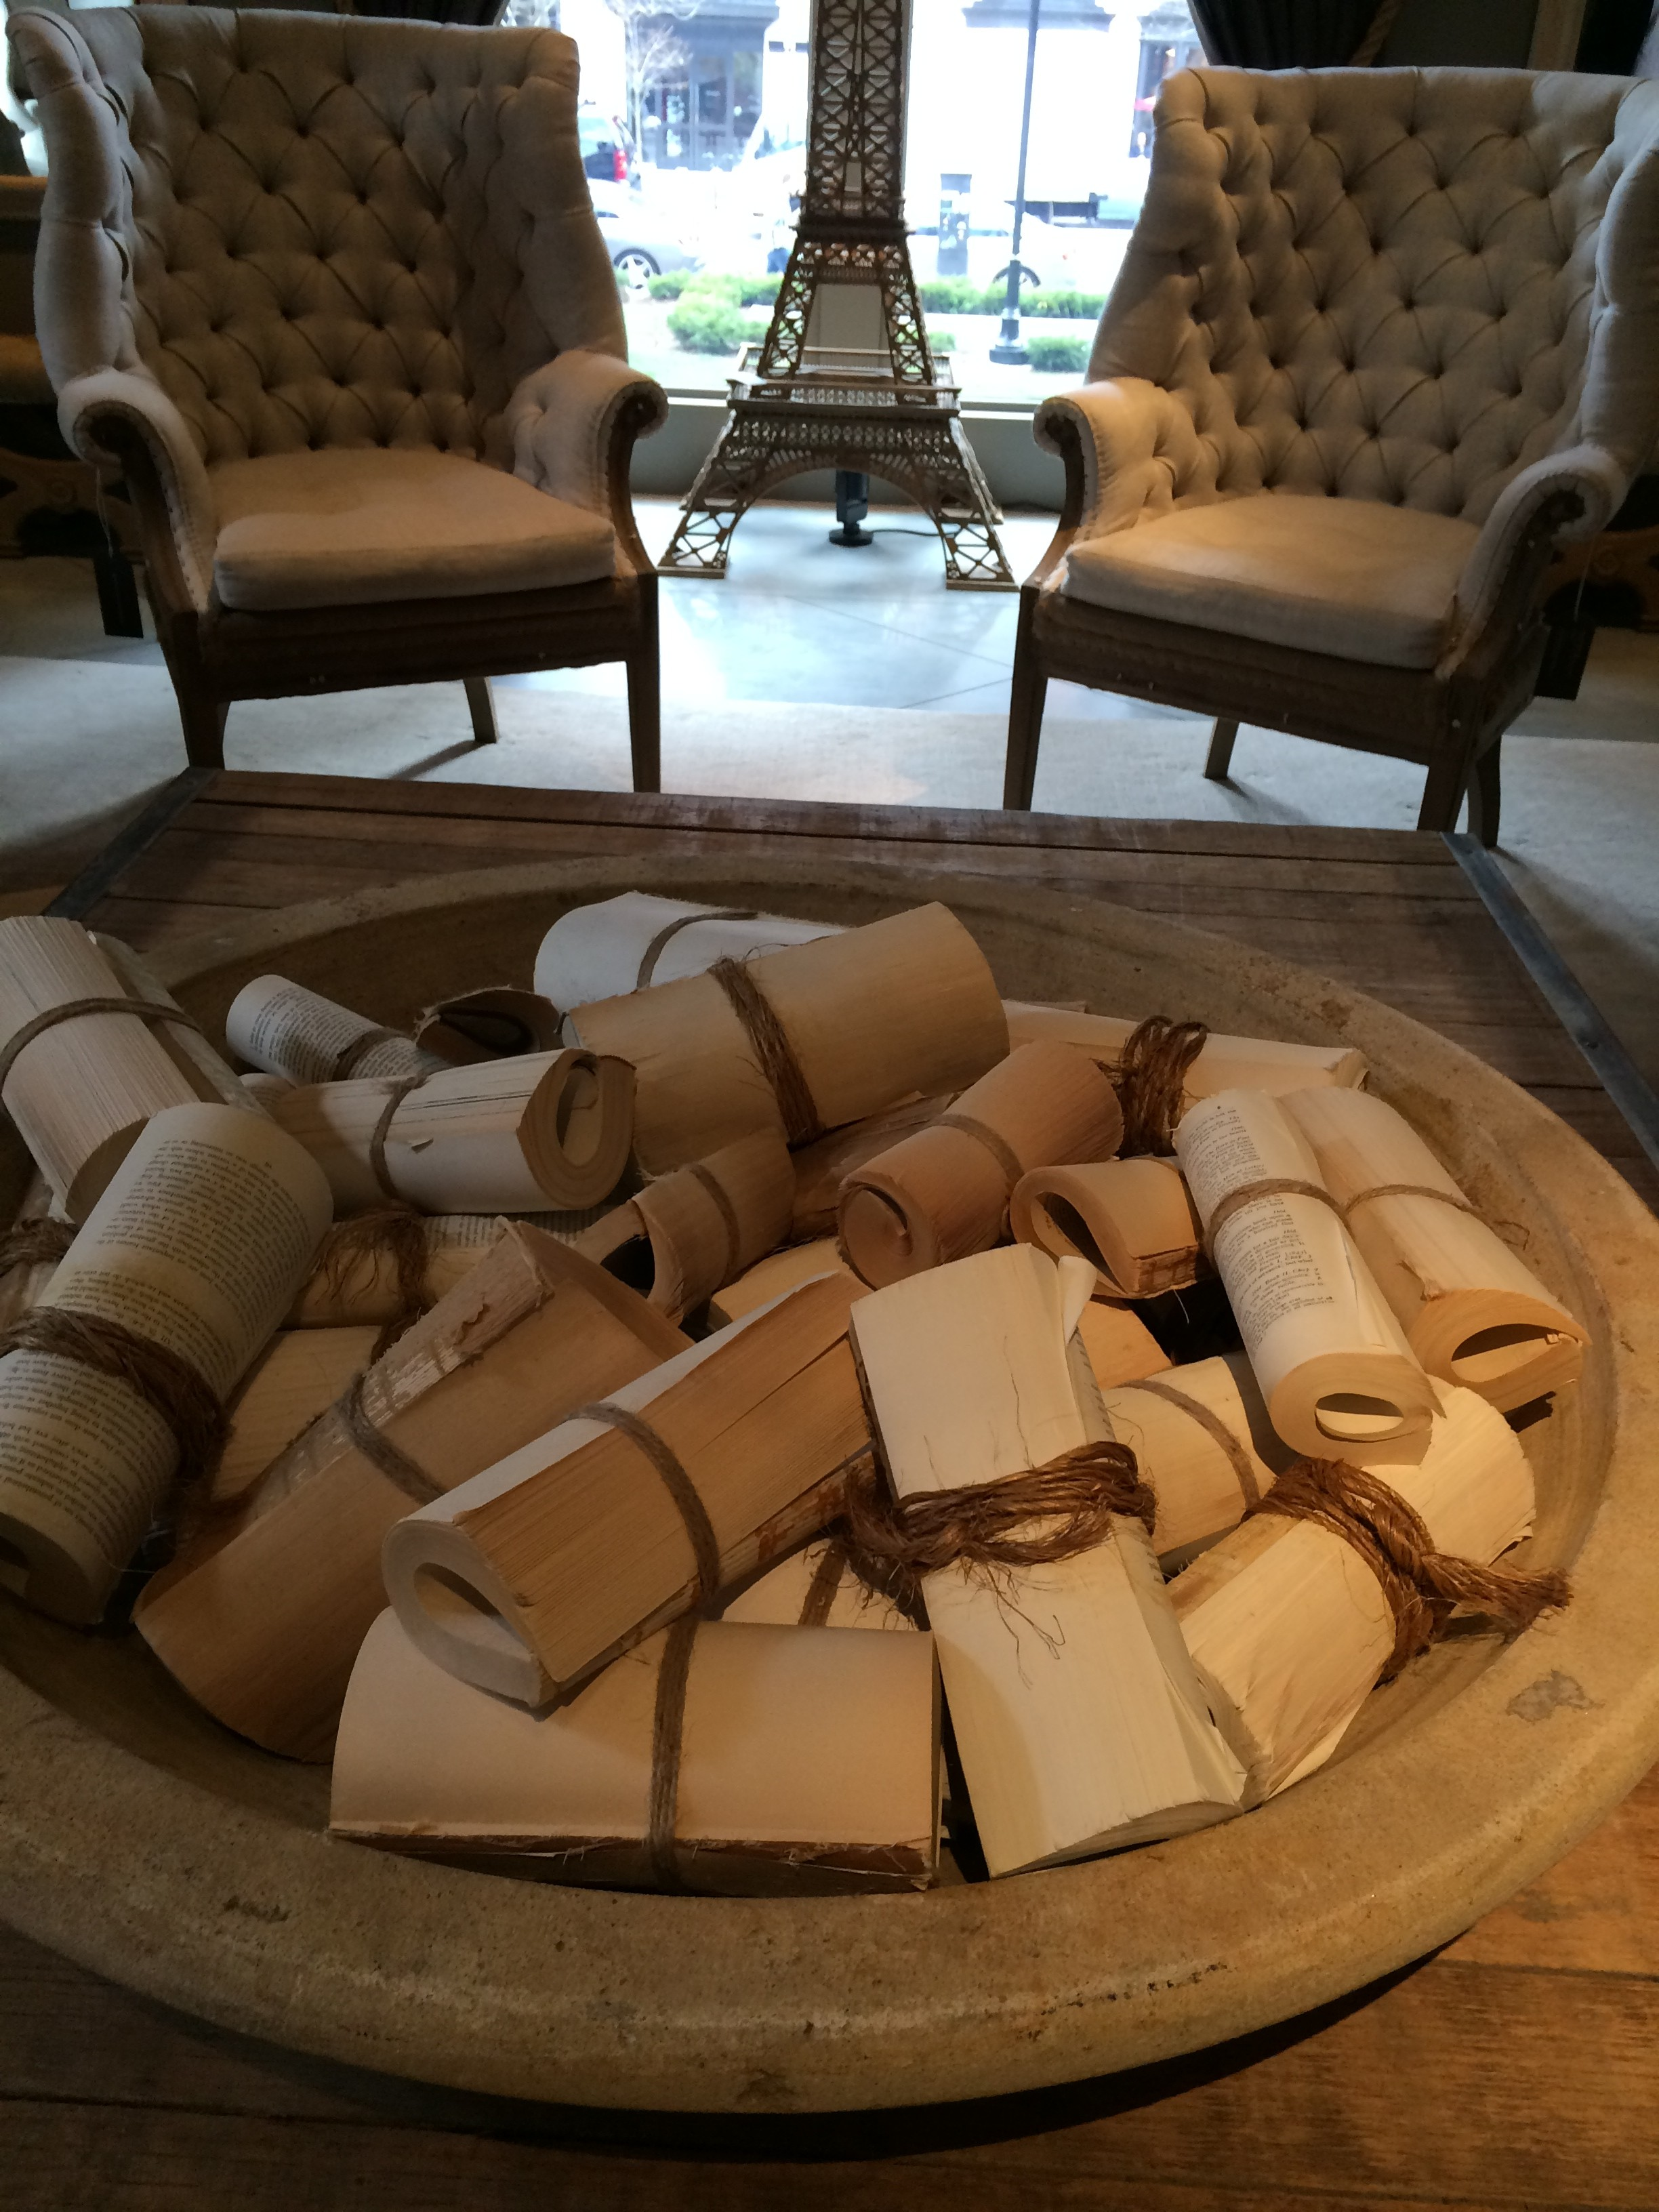 Decorating With Old Books In Fun Like With This Big Bowl Of Rolled Books Nicolicious